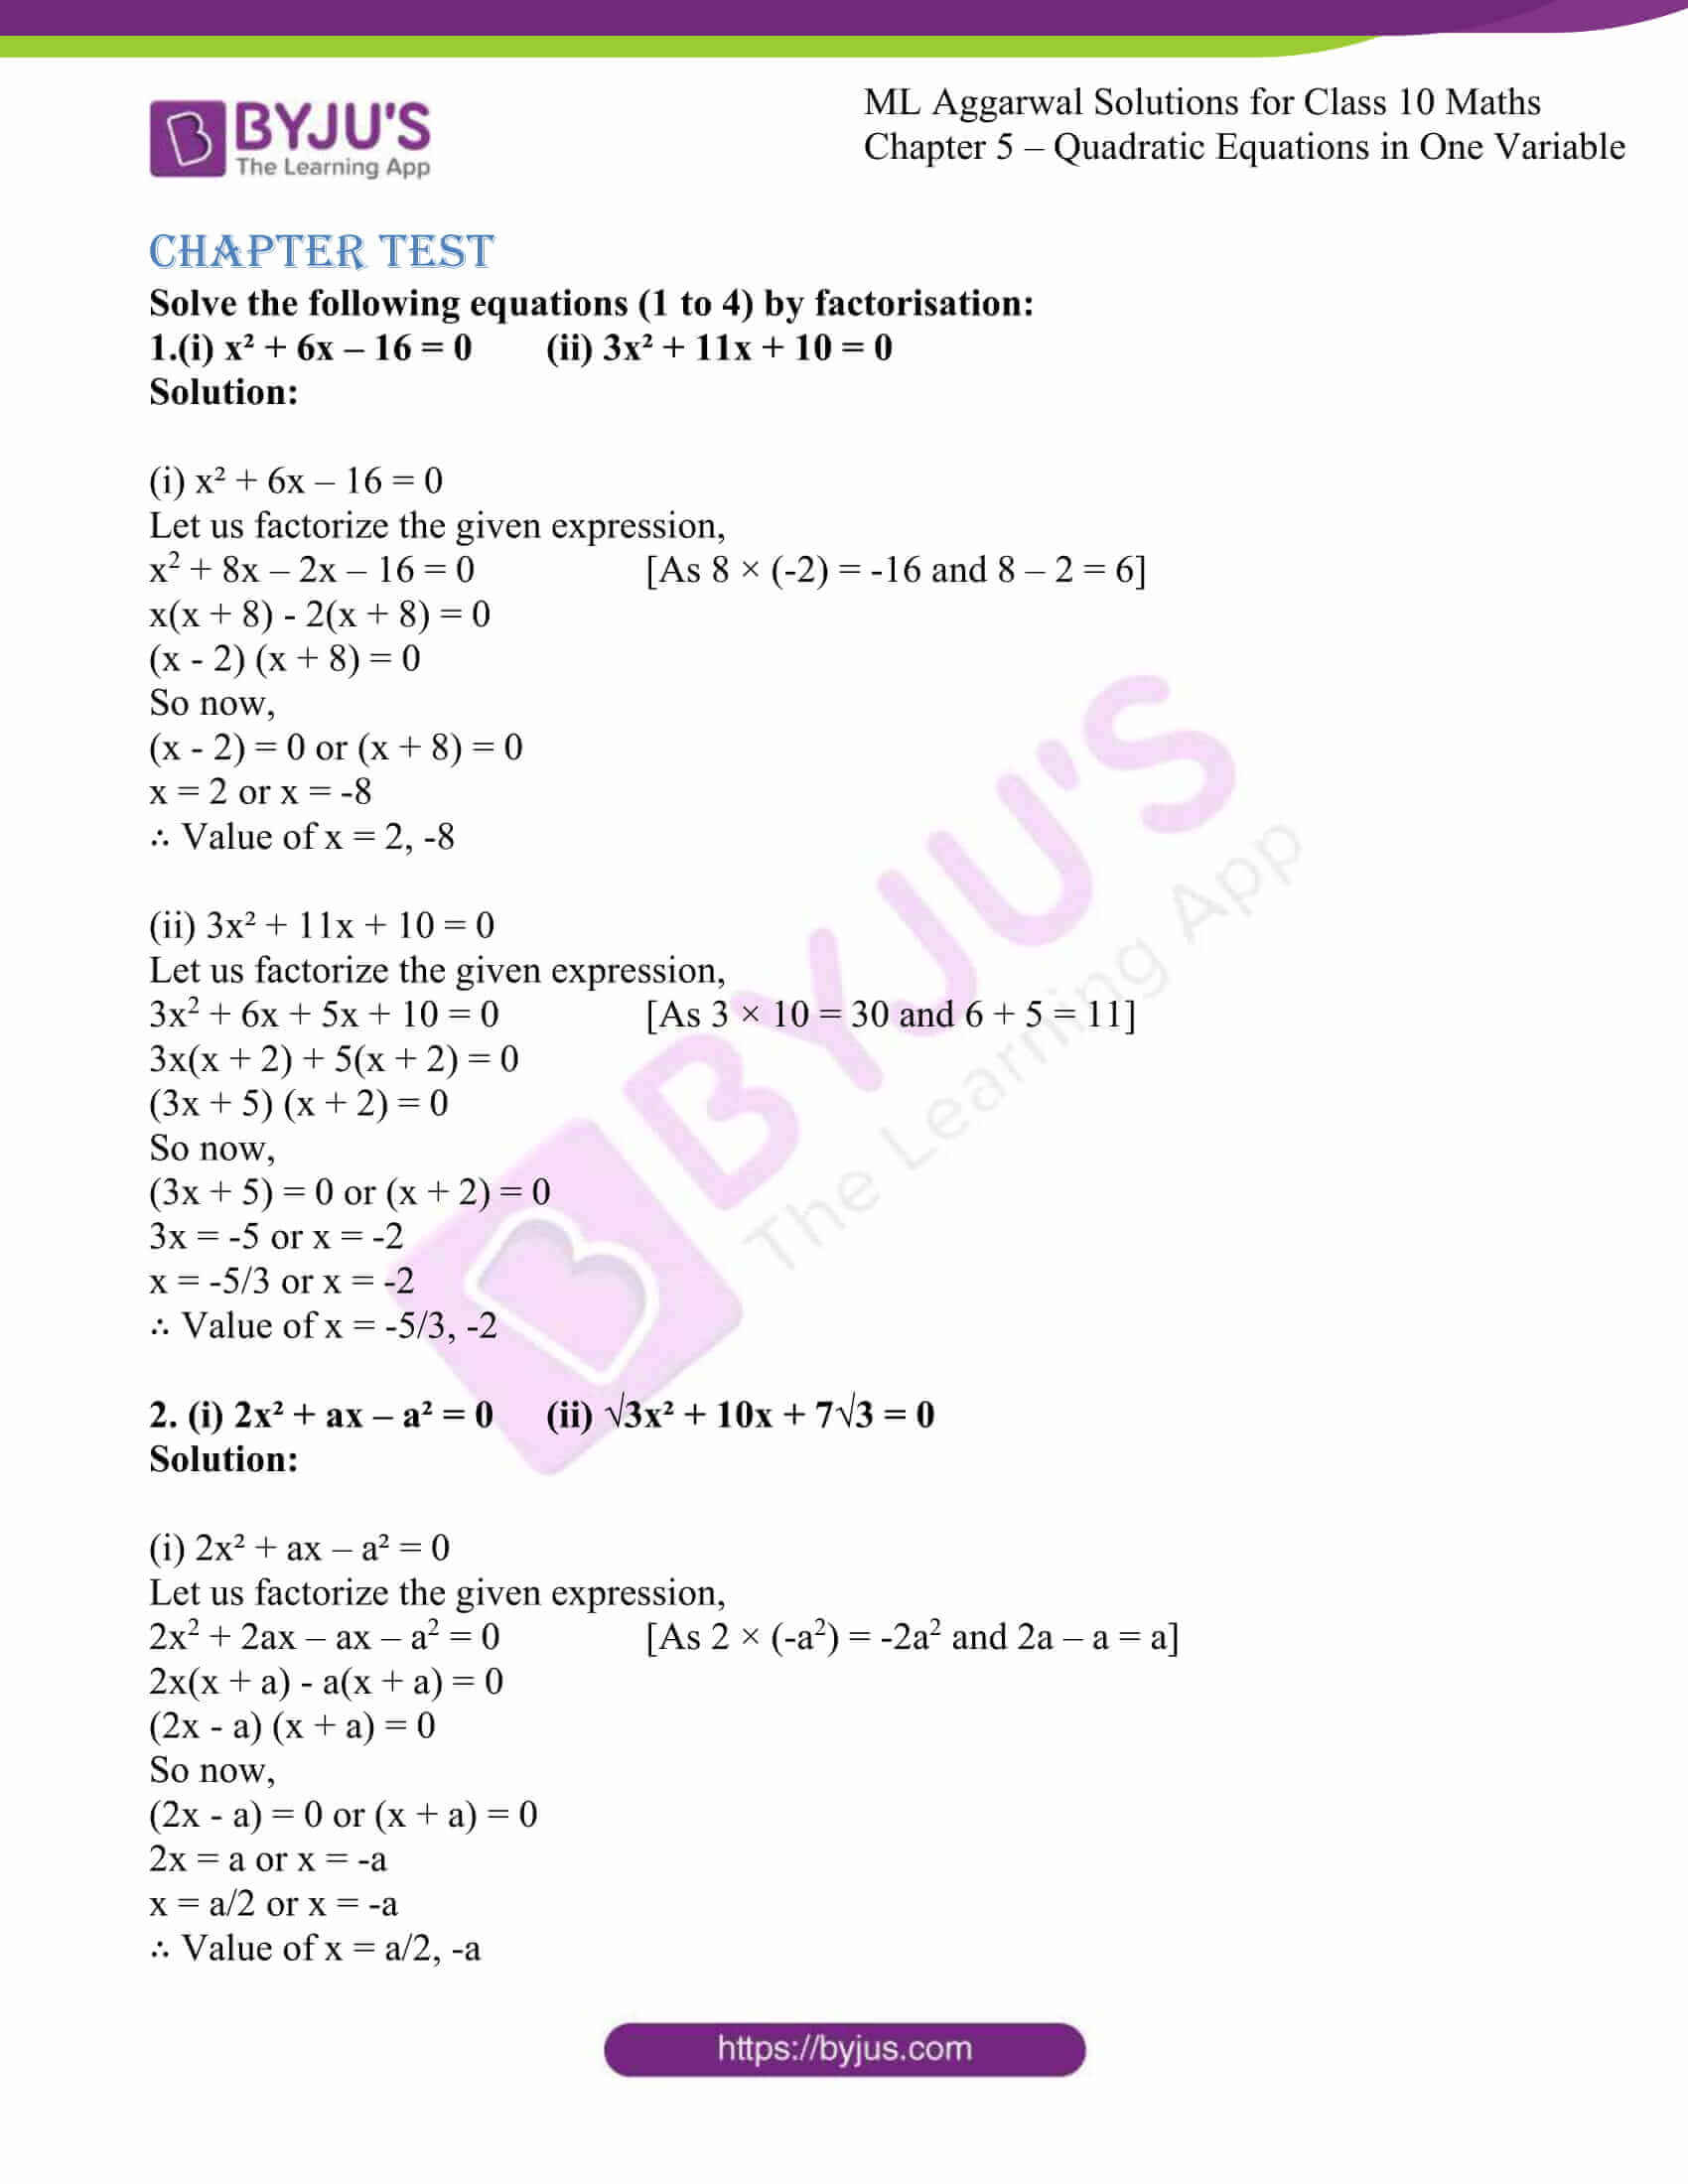 ml aggarwal solutions class 10 maths chapter 5 68